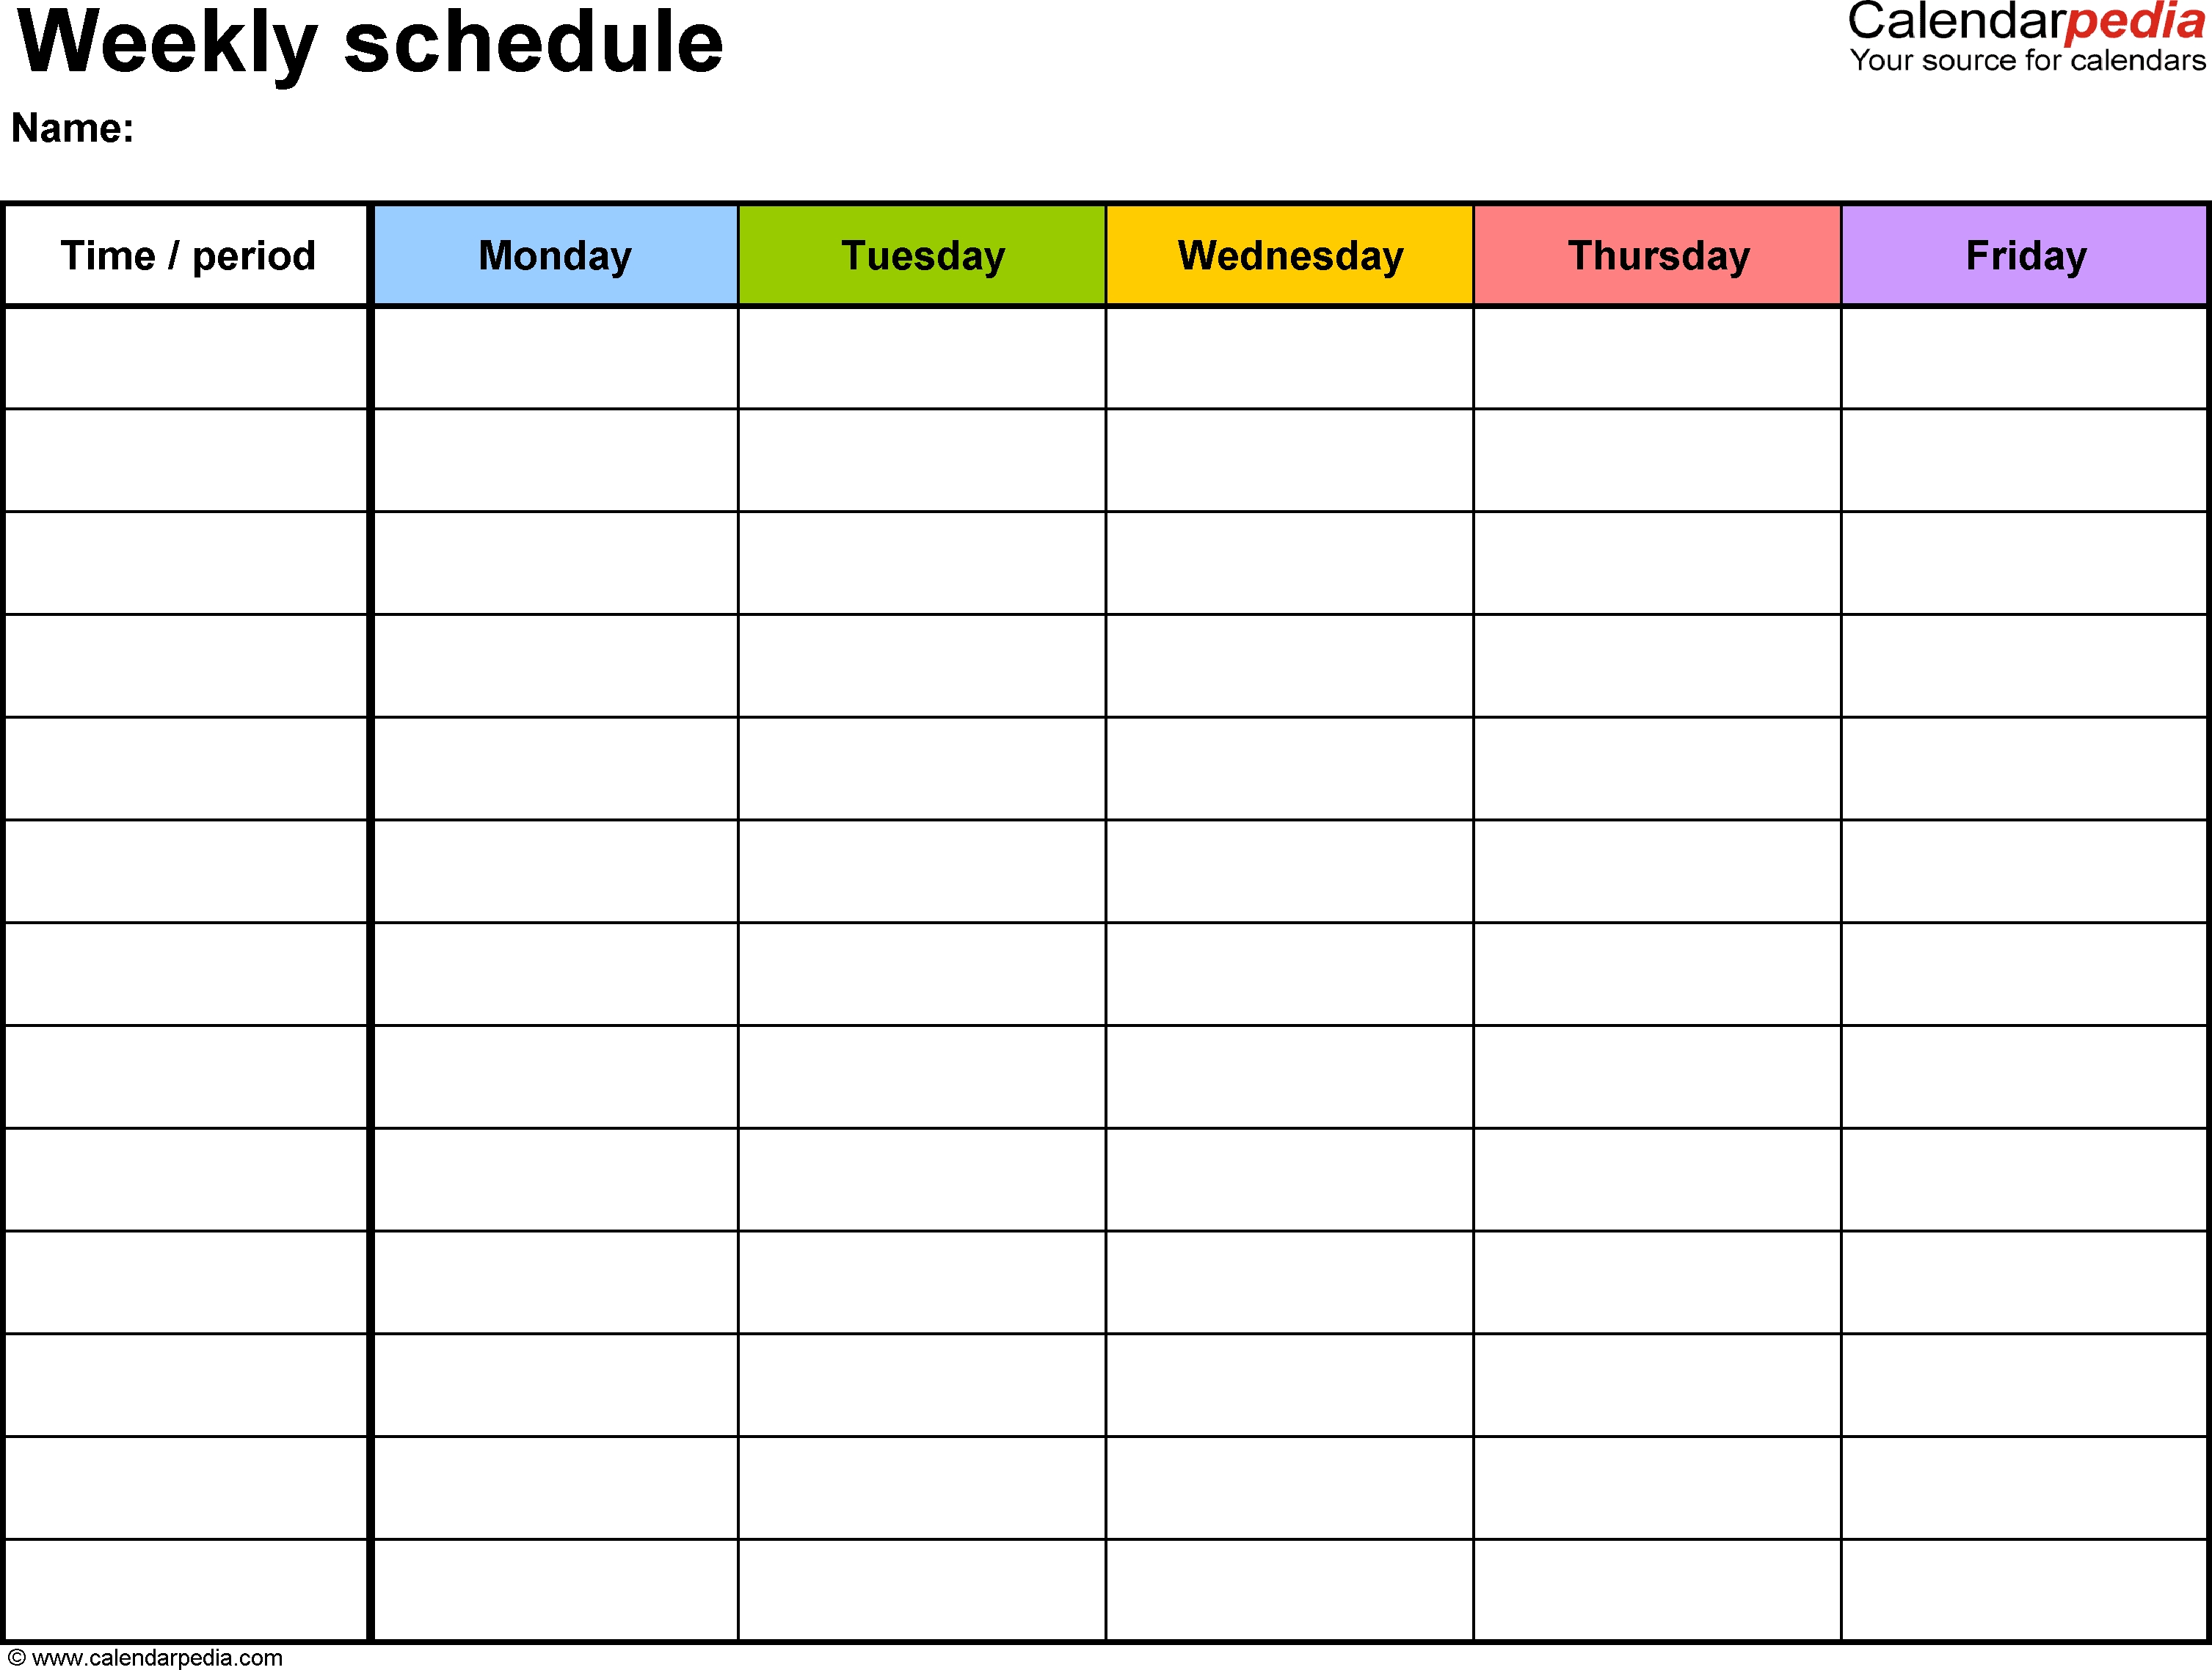 Free Weekly Schedule Templates For Word - 18 Templates-Monday To Sunday Monthly Fillable Calendar